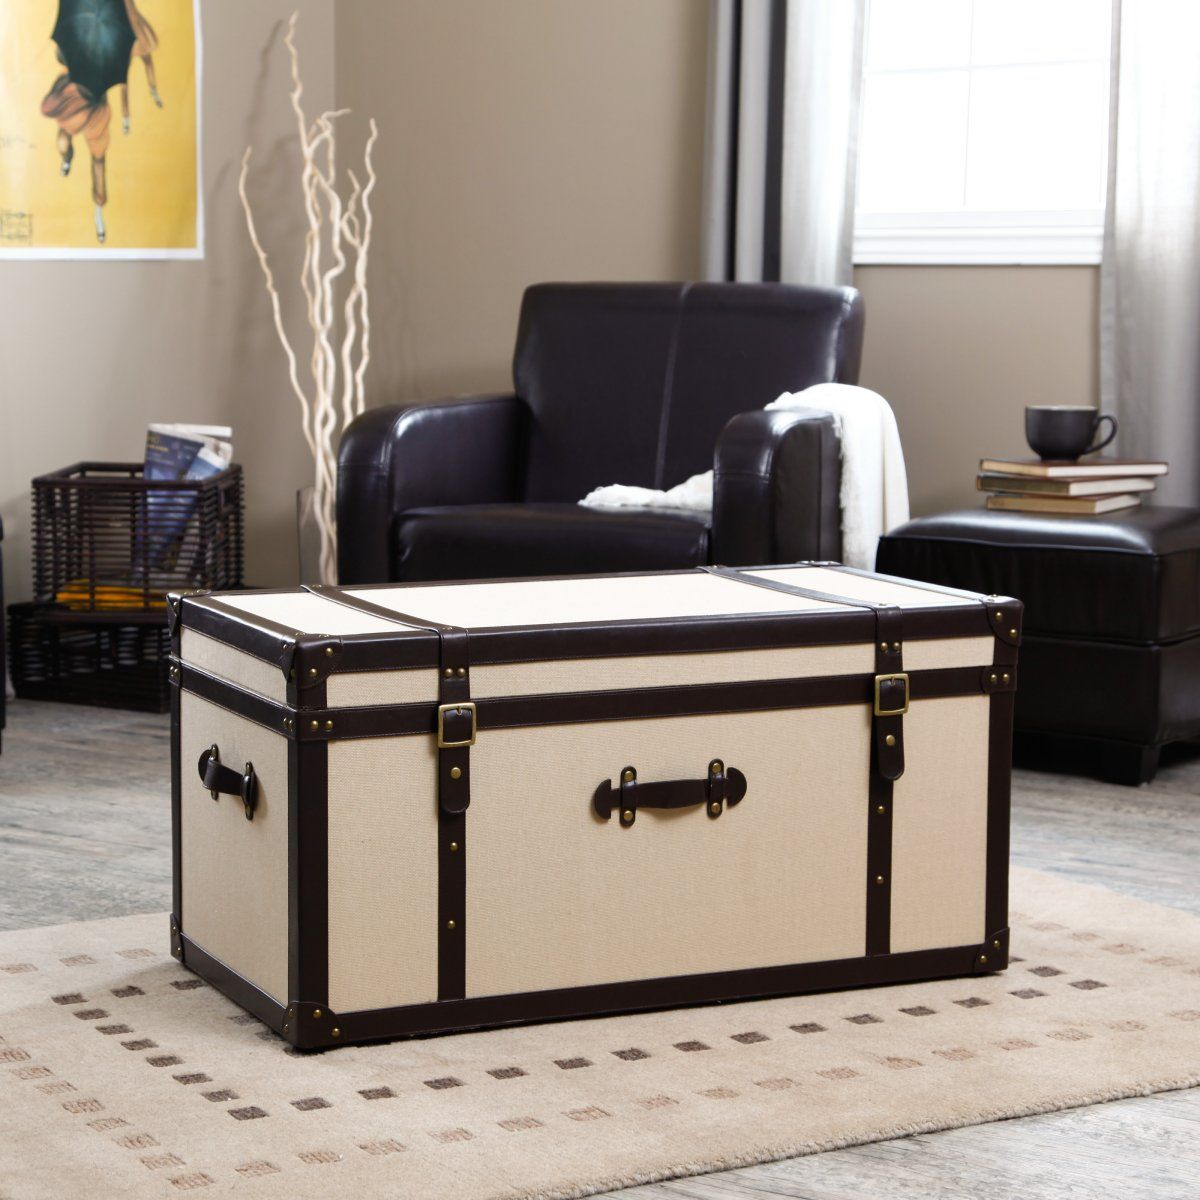 Comfy White Trunk Coffee Table On The Cream Rug Paired With Black